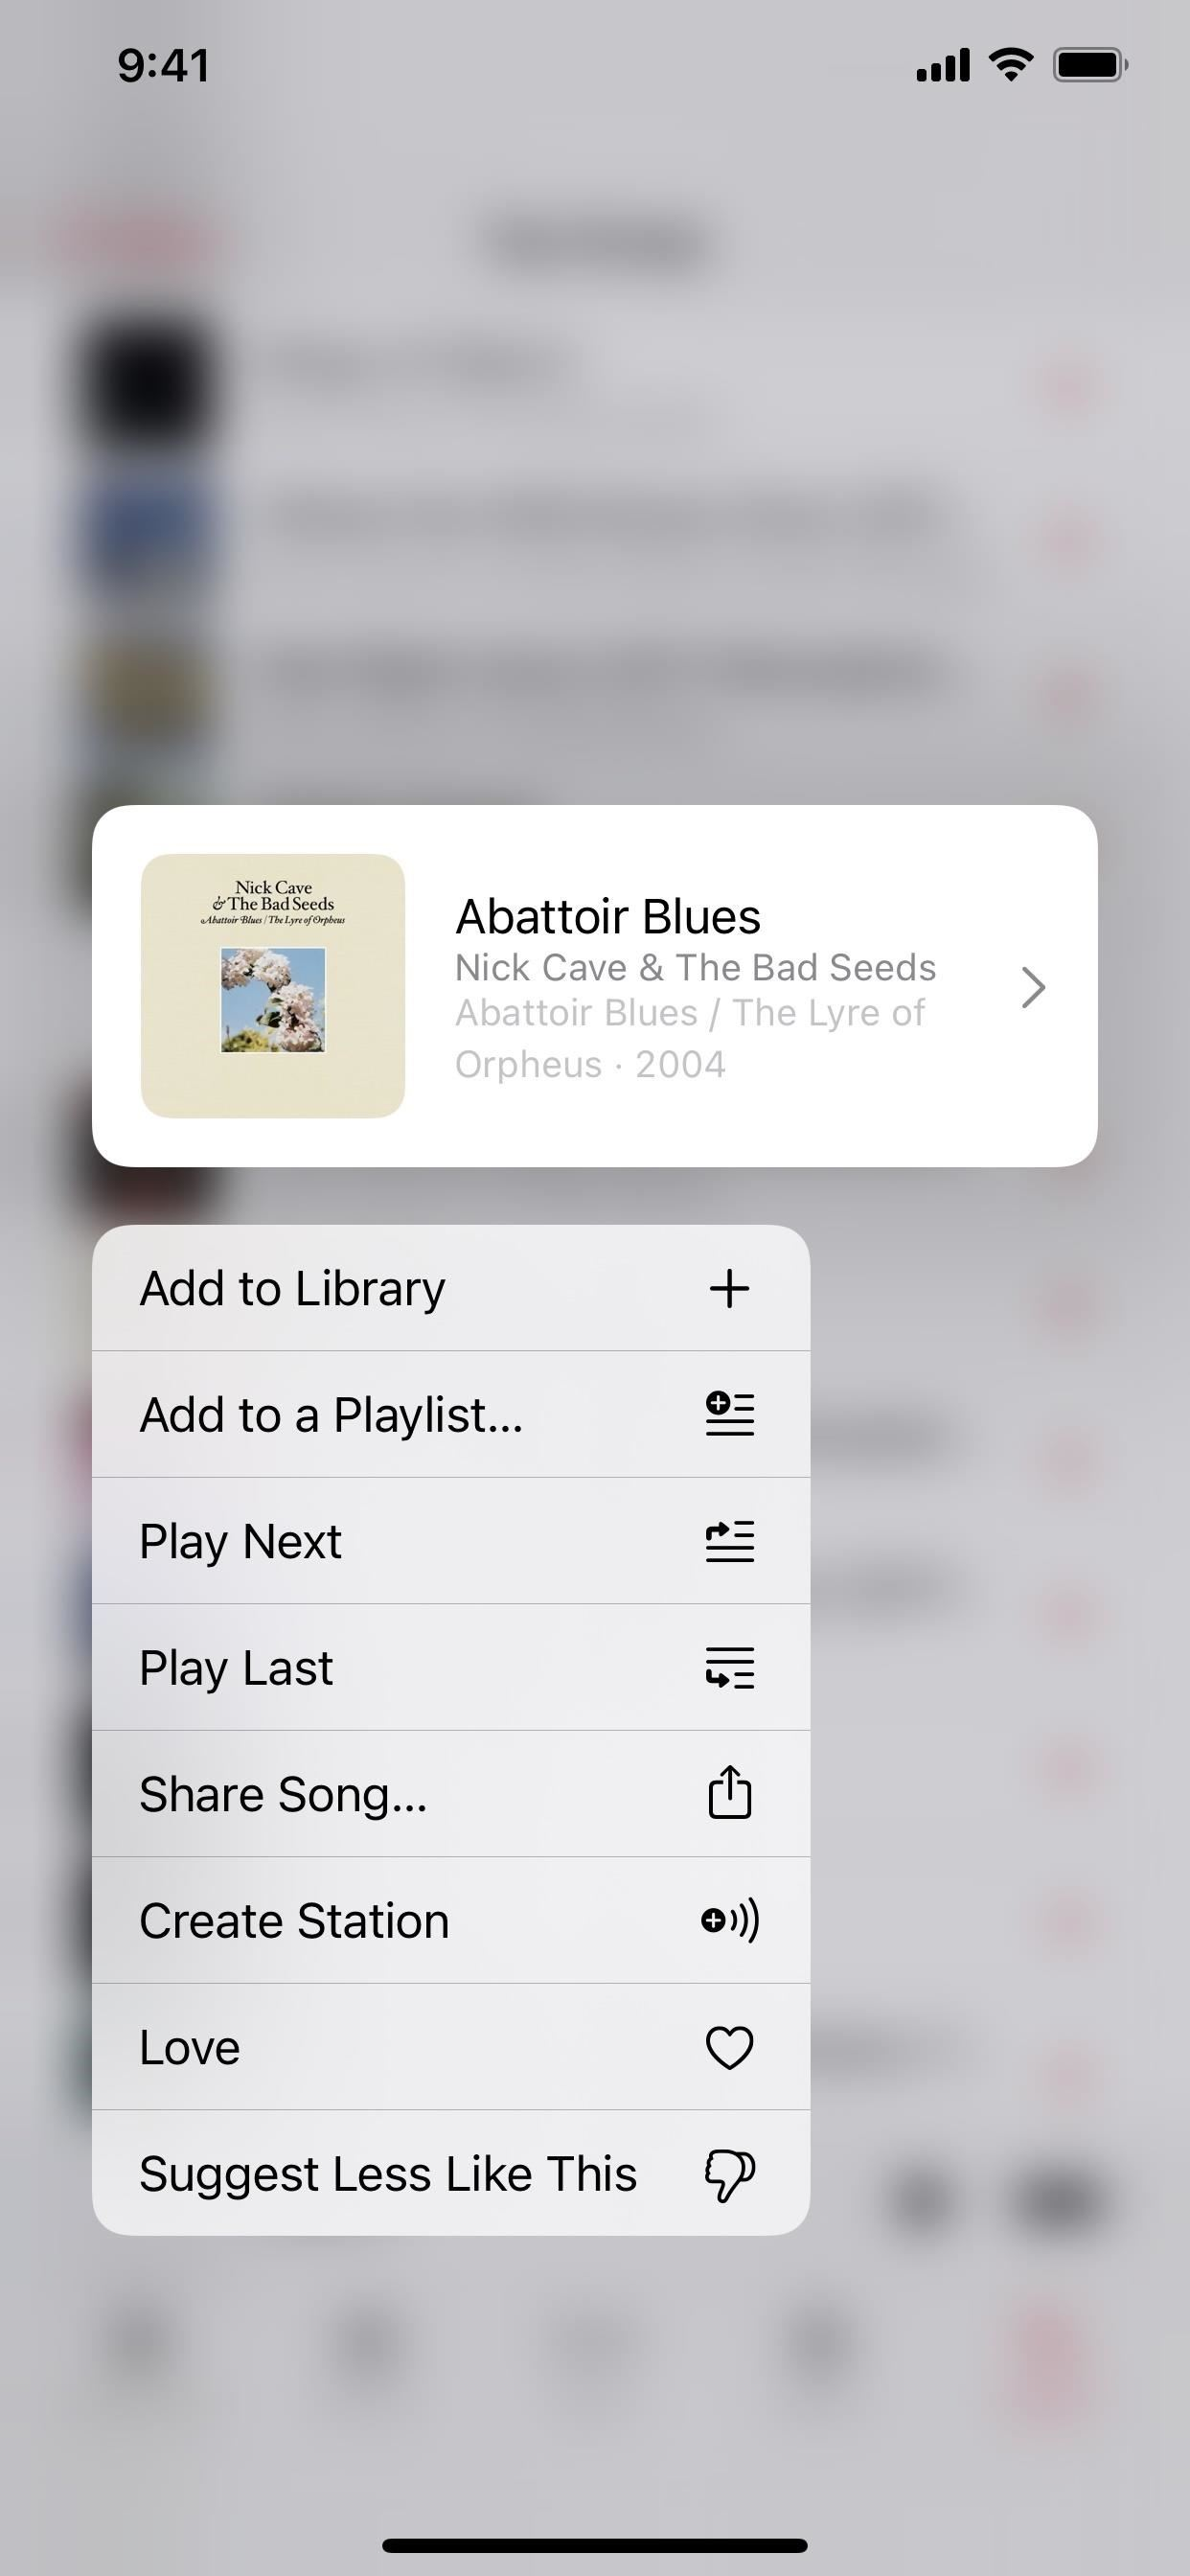 The Easiest Way to Download High-Res Cover Art for Albums, Movies, Books, Podcasts, Apps & More — Right from Your iPhone